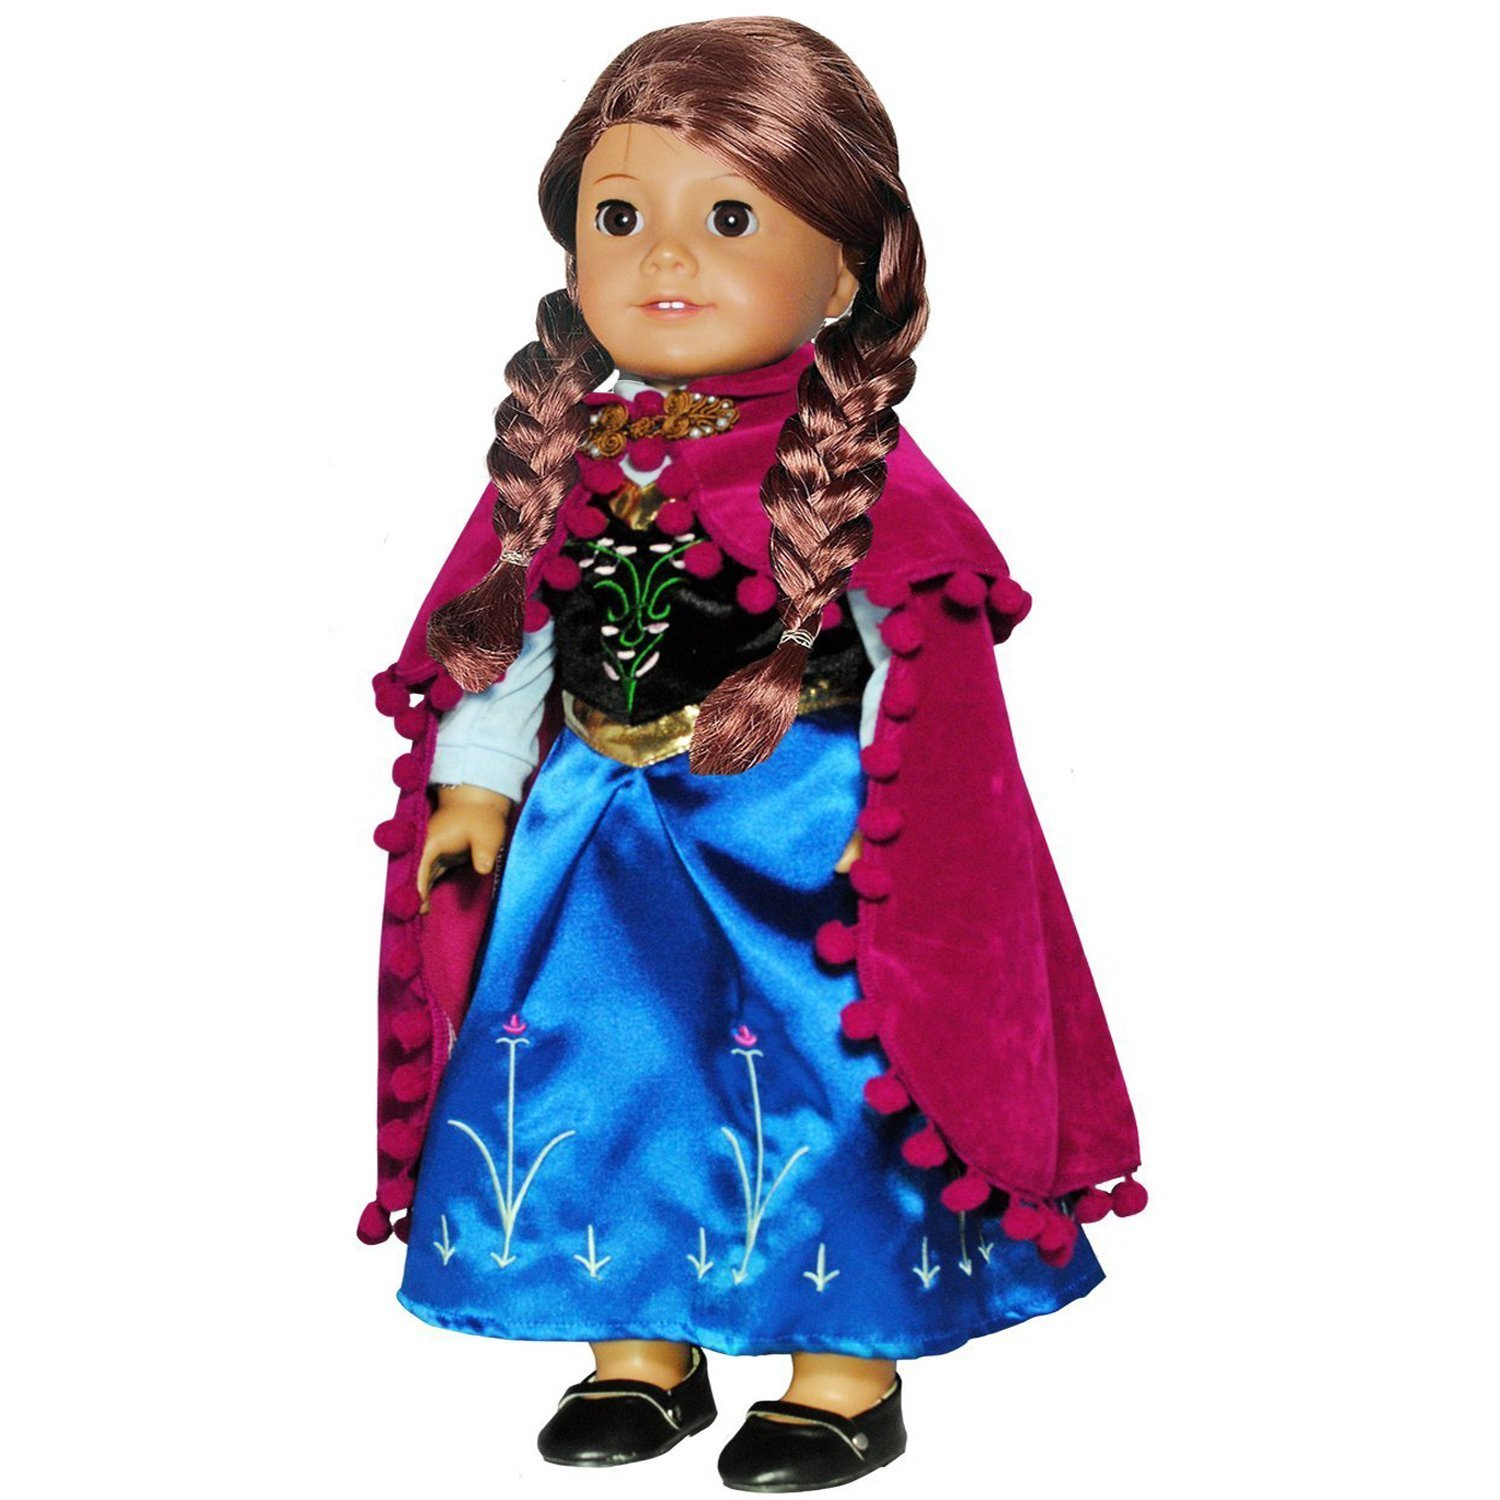 Doll Clothes Princess Anna Dress Outfit Fits American Girl